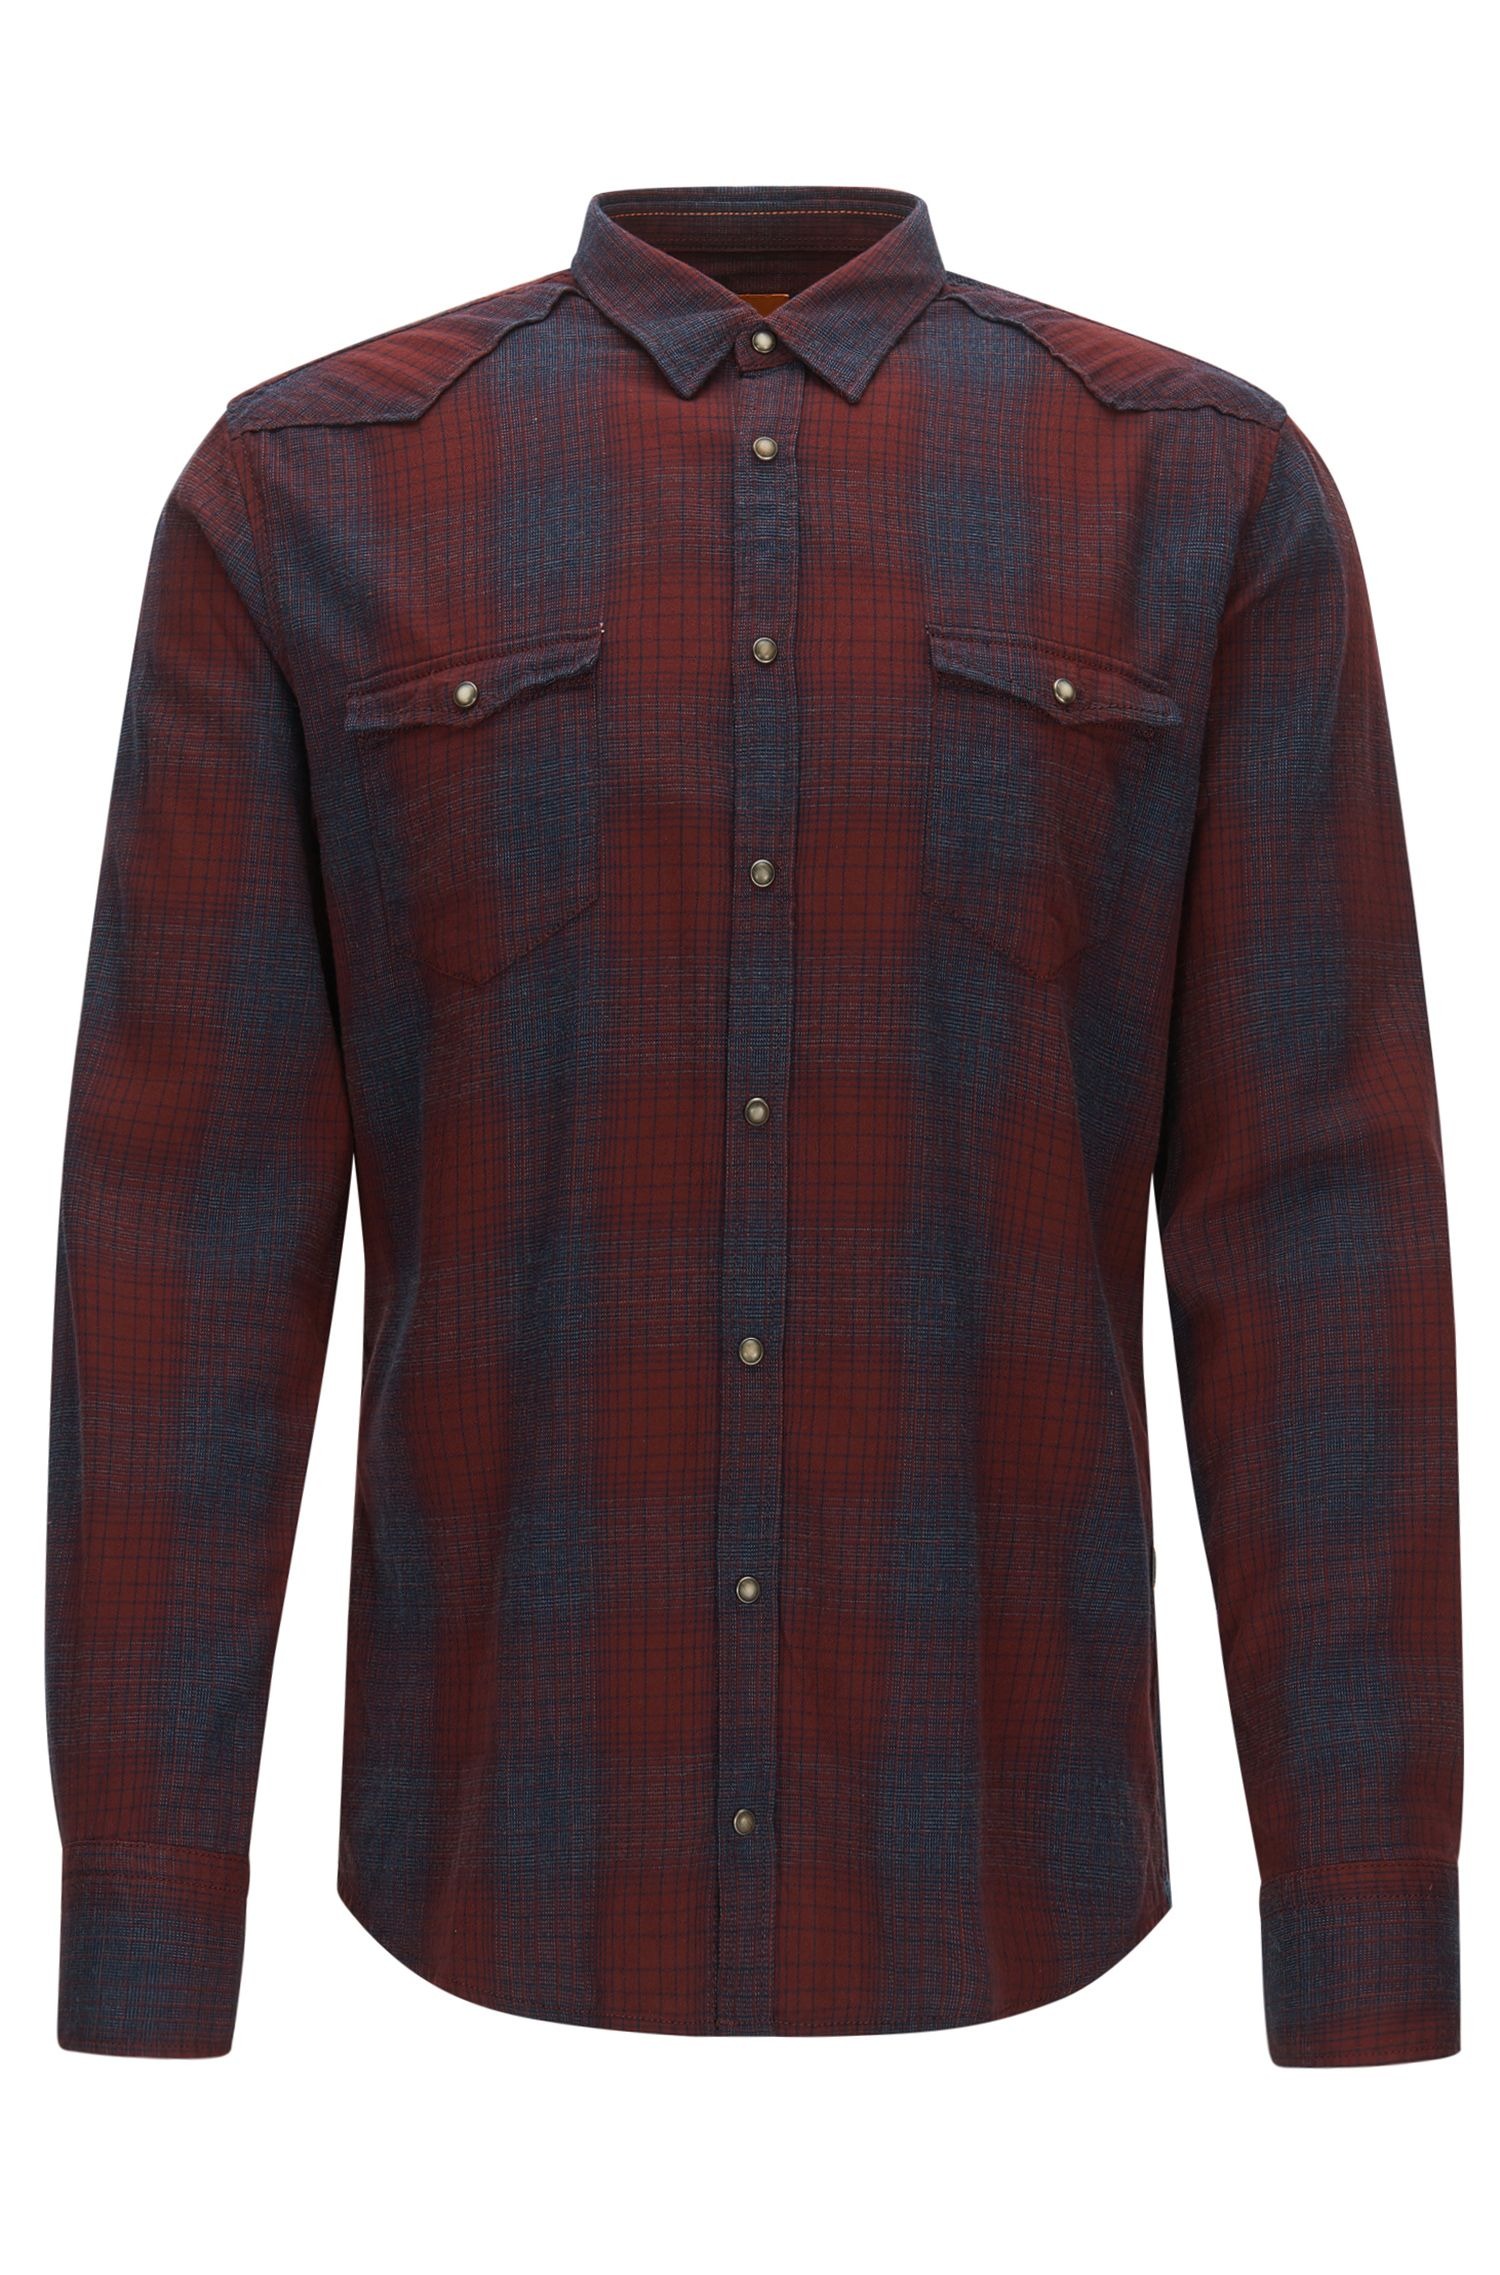 'Erodeo' | Slim Fit, Plaid Stretch Cotton Button Down Shirt, Red